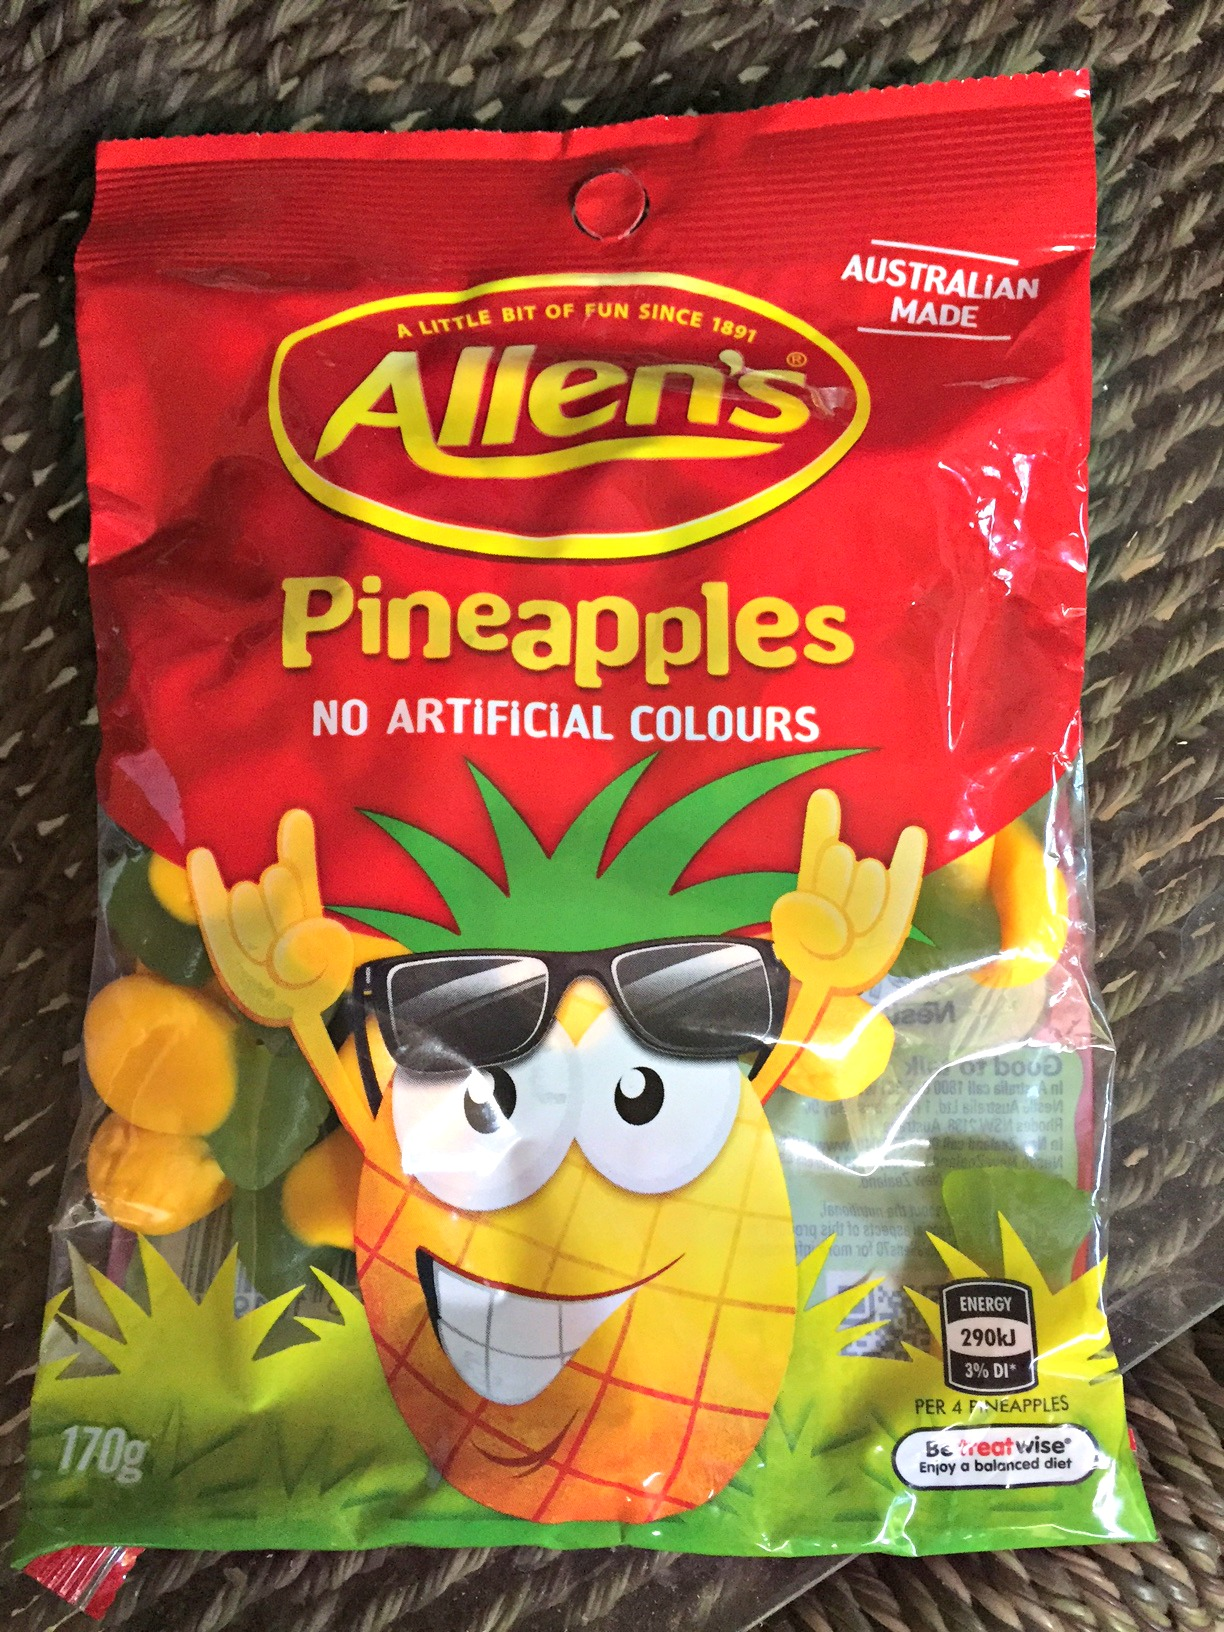 Pineapple candy from down under - www.stampedwithaloha.com